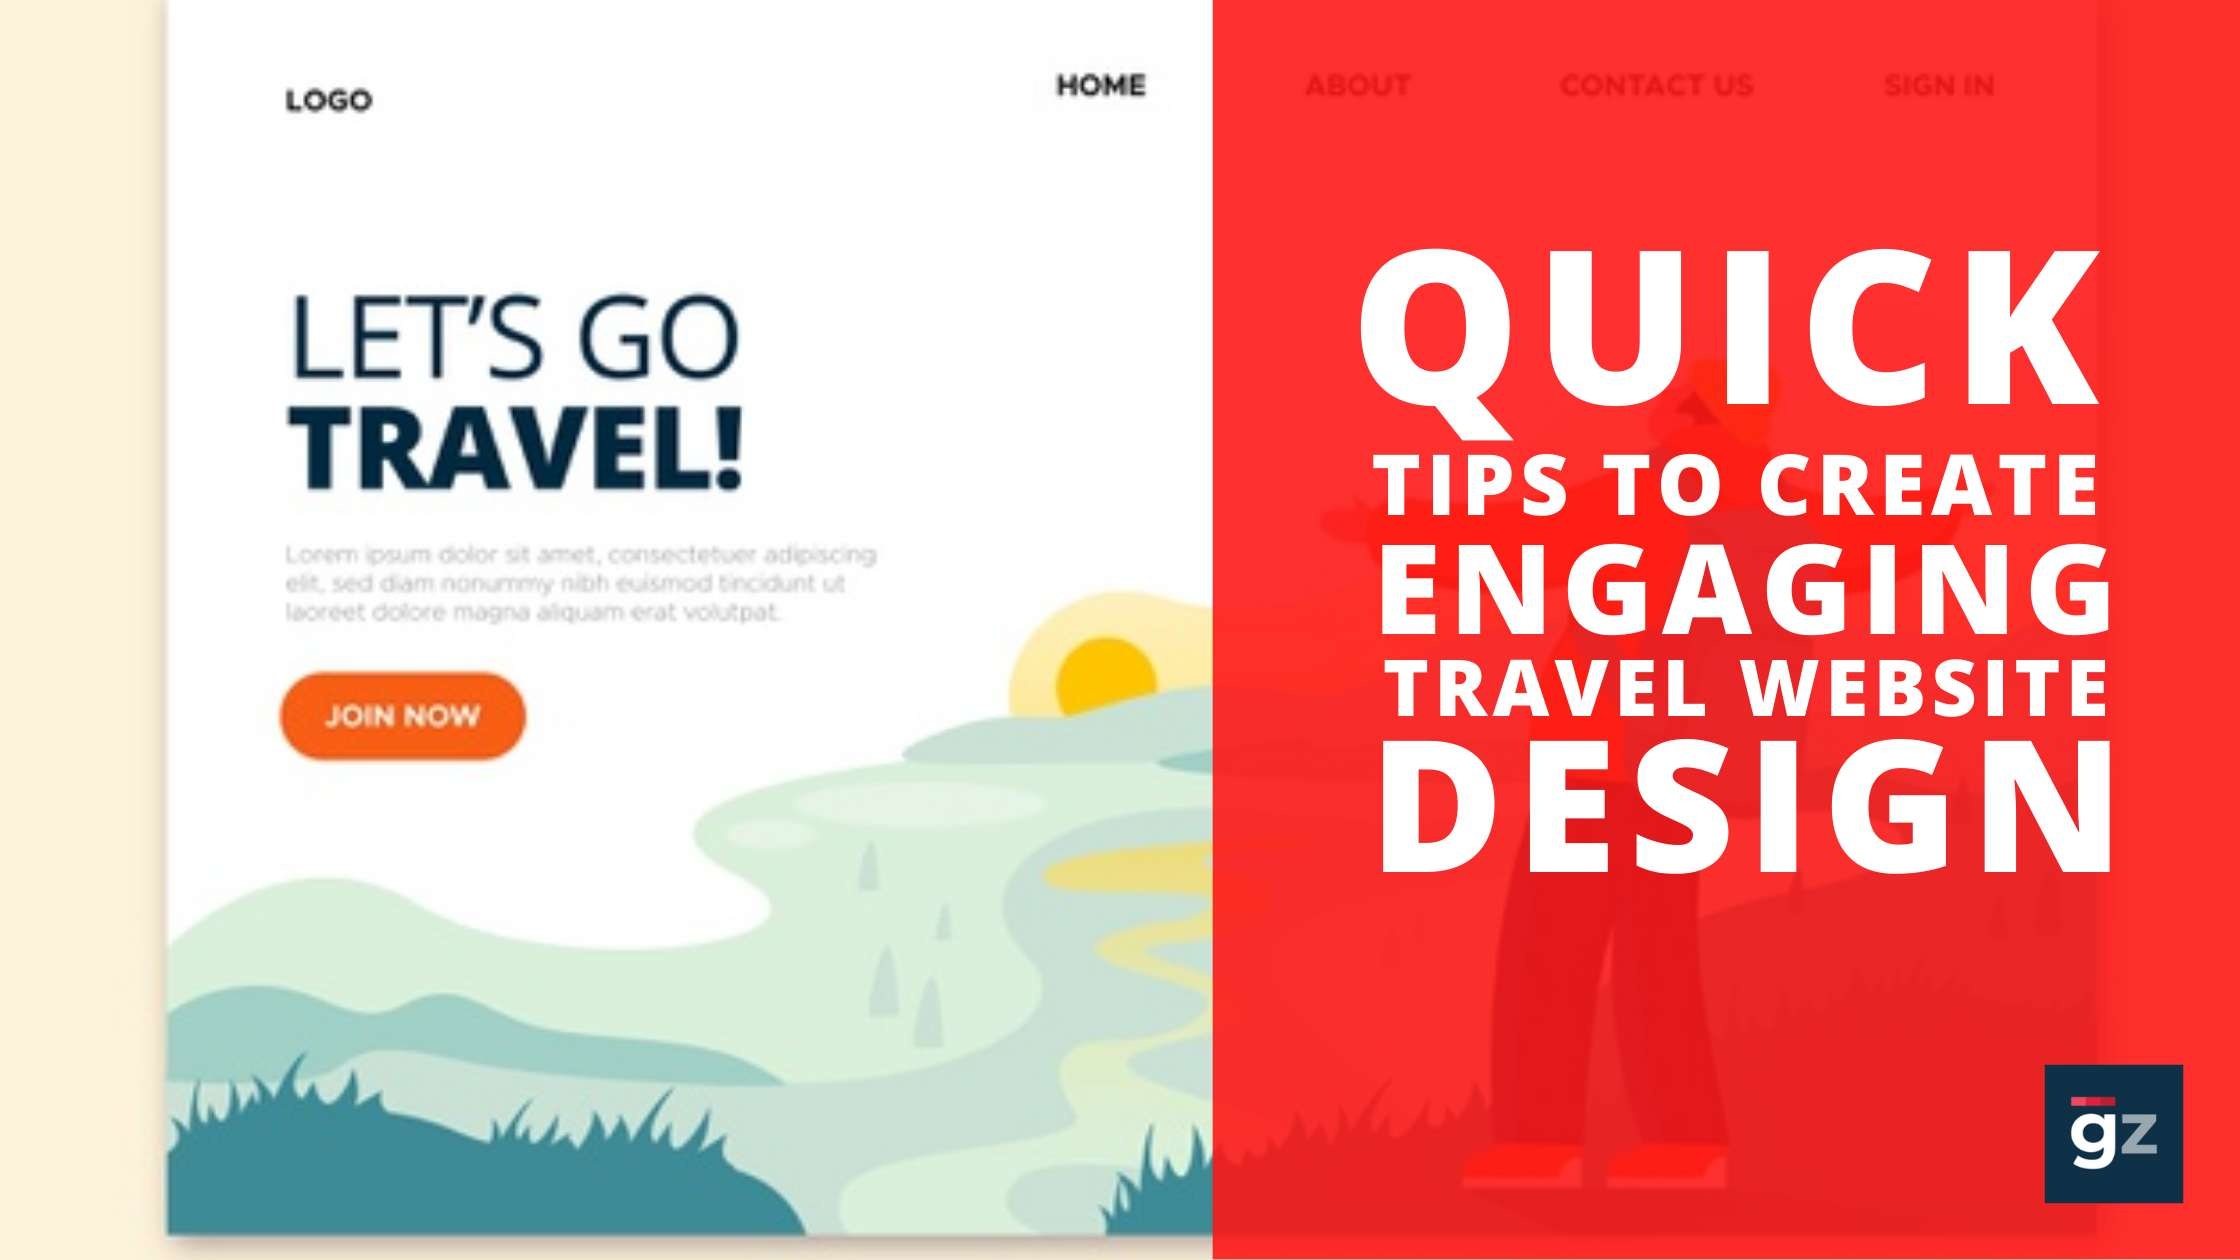 Quick Tips To Create Engaging Travel Website Design